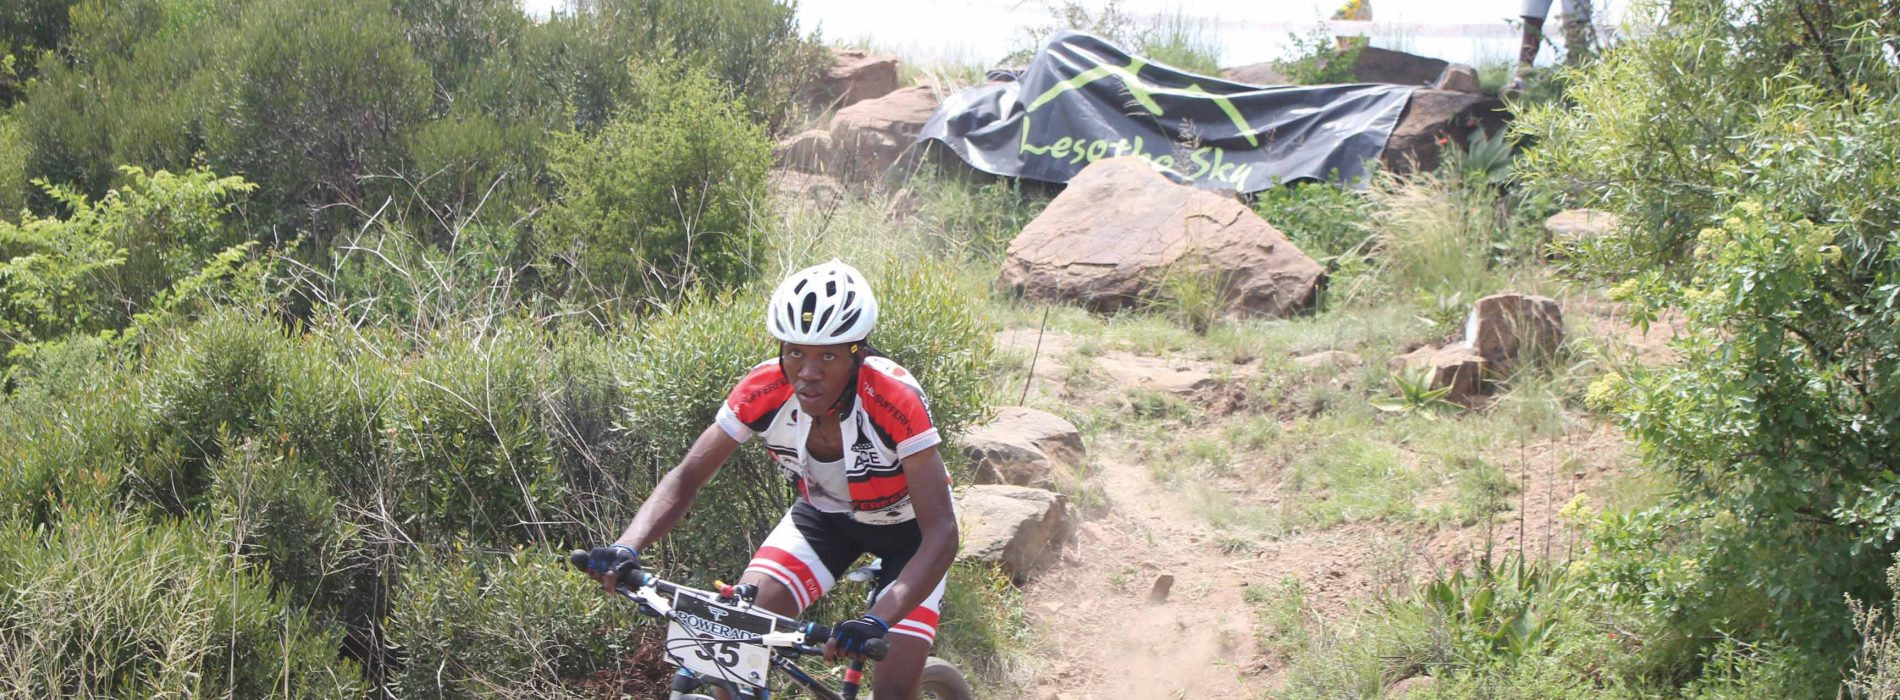 Monese fine-tunes for Lesotho Sky Race